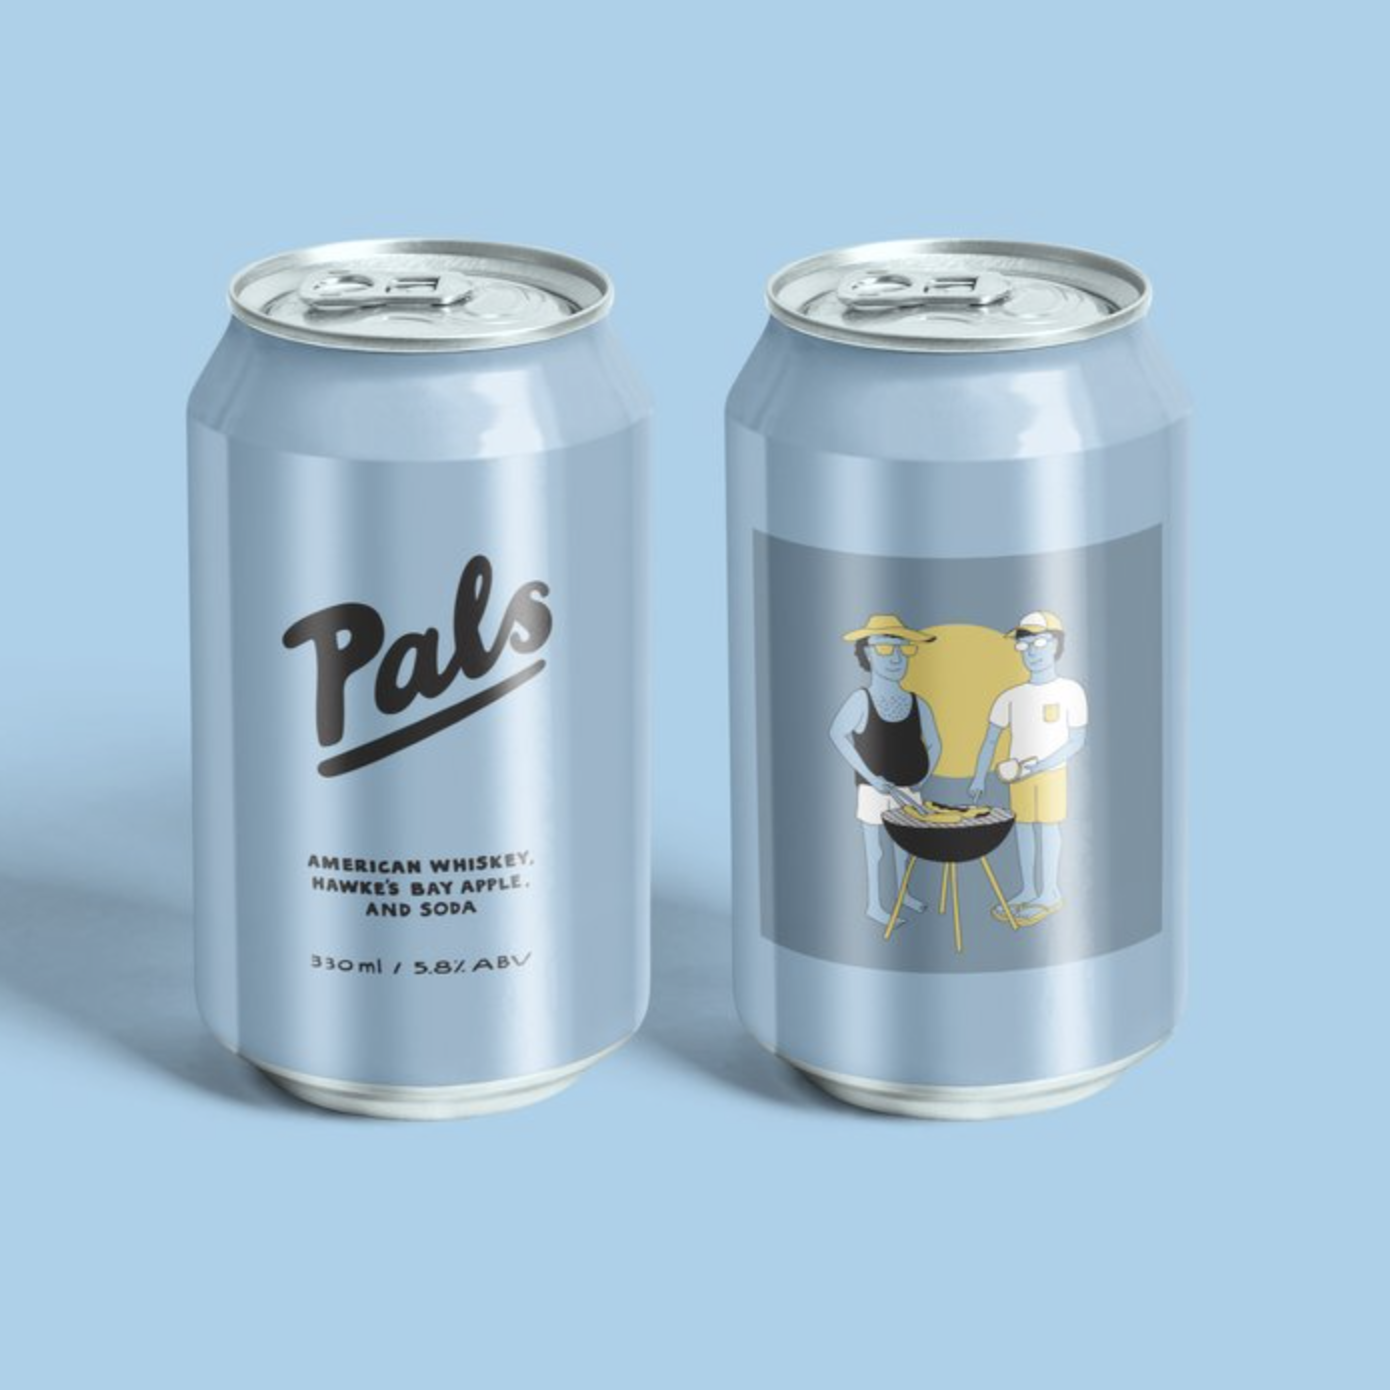 Pals - VAmerican Whiskey, Hawke's Bay Apple & Soda